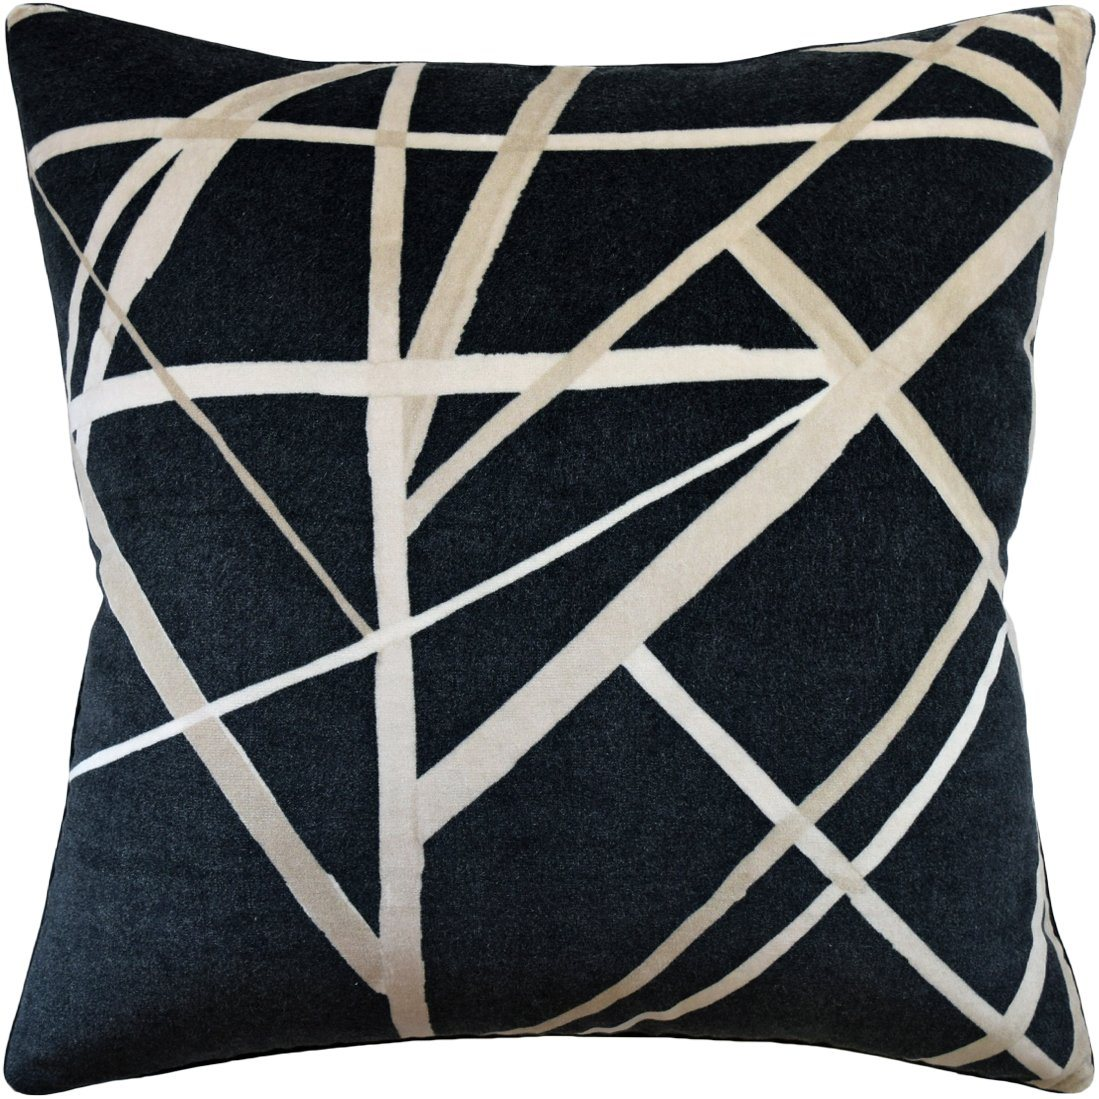 Channels Velvet Ebony and Almond Pillow - Fig Linens